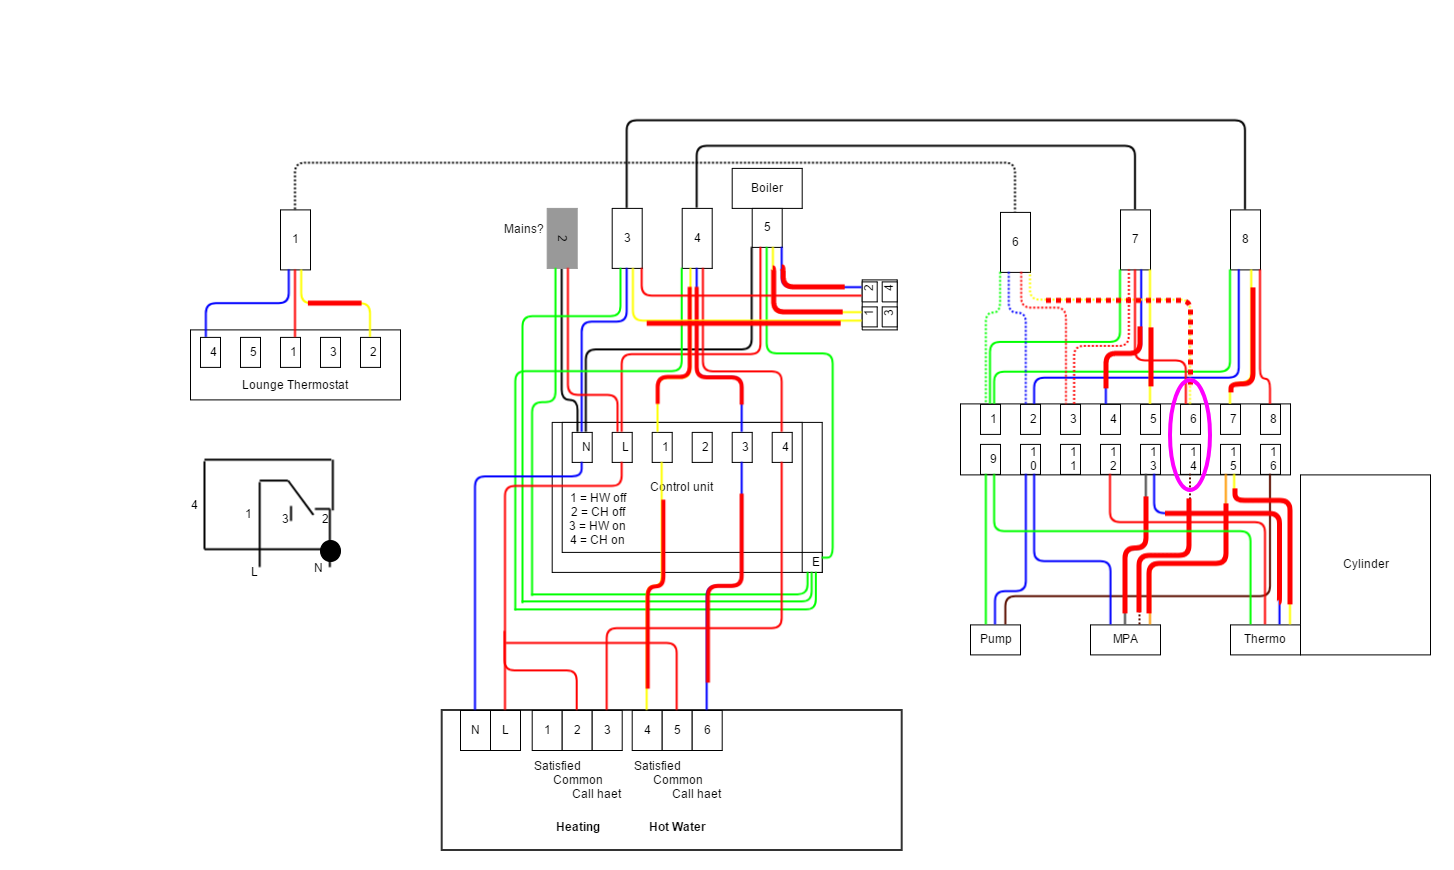 Wiring Diagram For Heating System : Y plan wiring diagram images